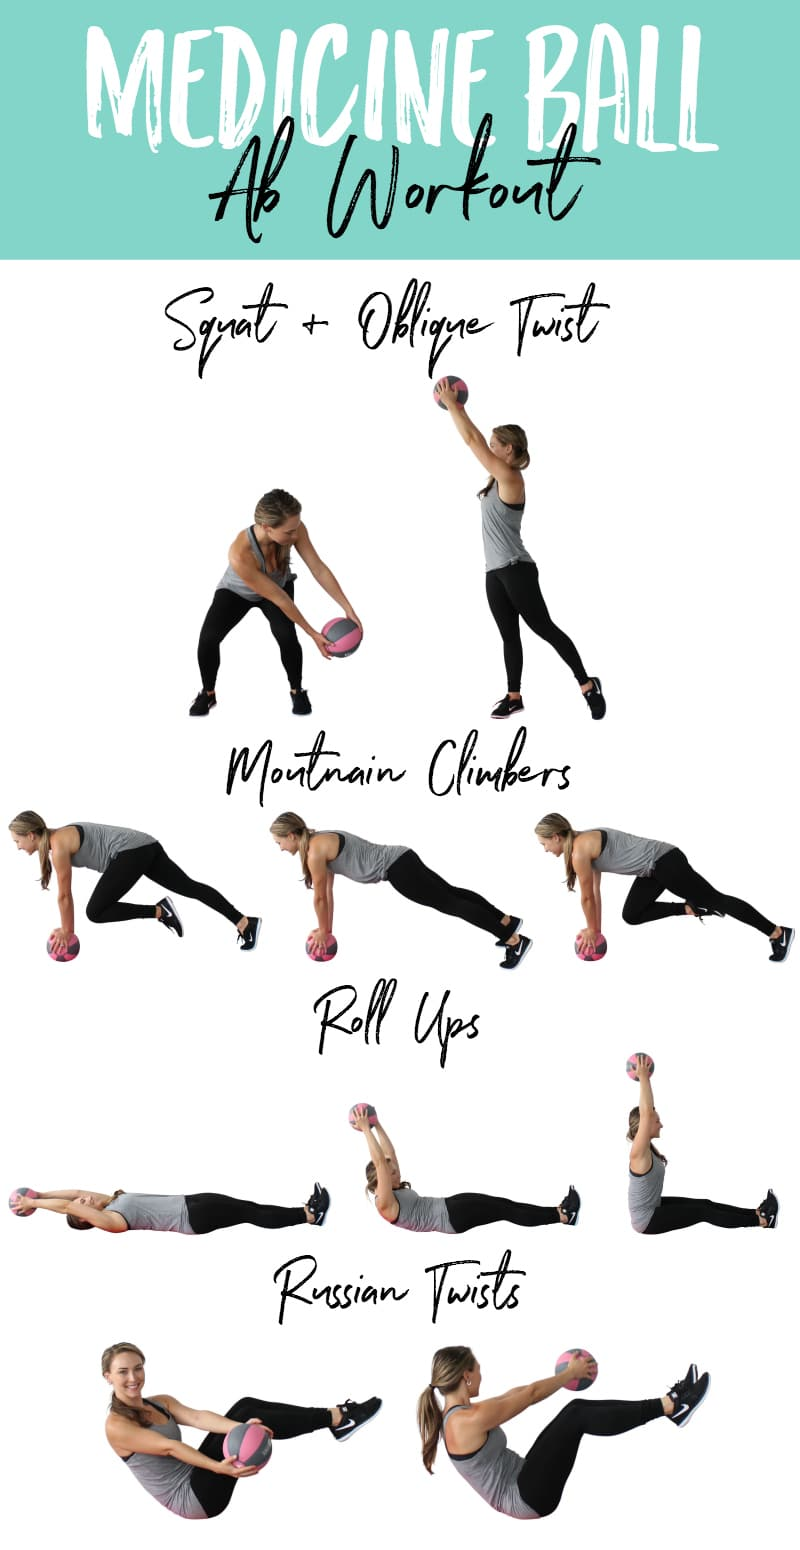 This is an image of Bewitching Printable Exercise Ball Workouts